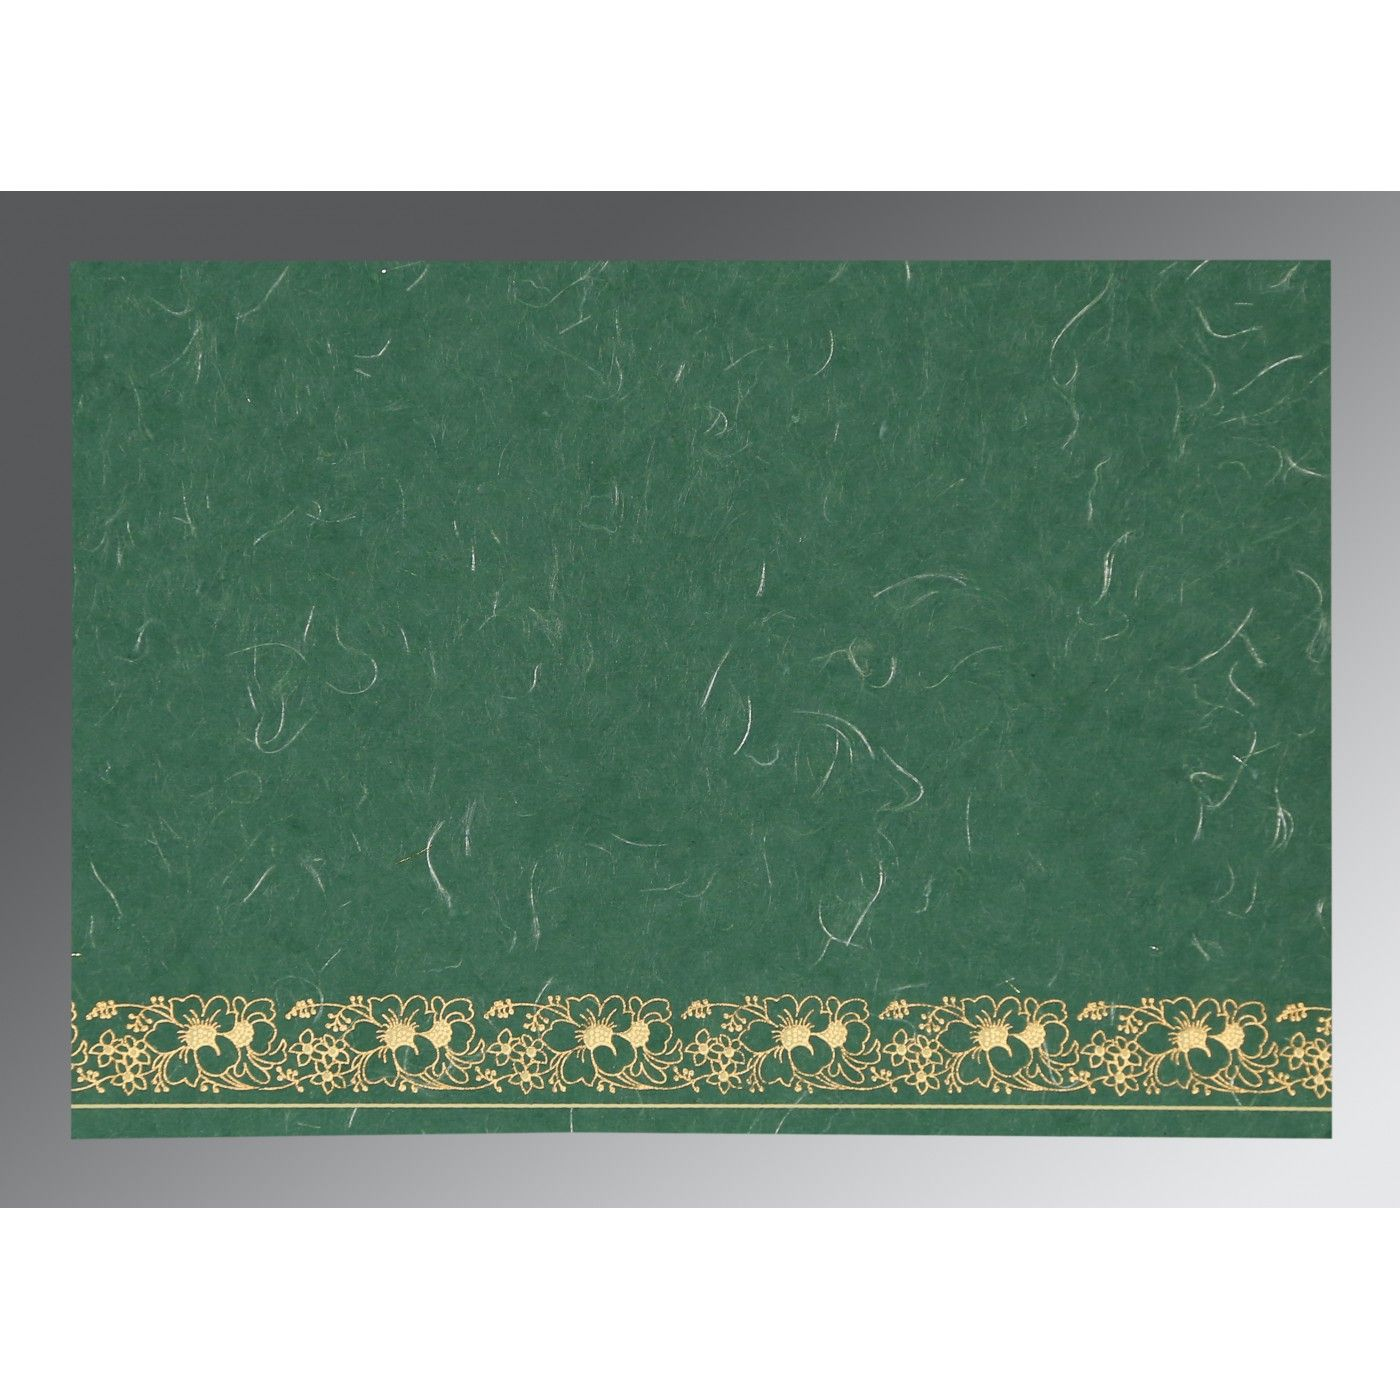 DARK SPRING GREEN HANDMADE SILK SCREEN PRINTED WEDDING INVITATION : CG-8207L - IndianWeddingCards